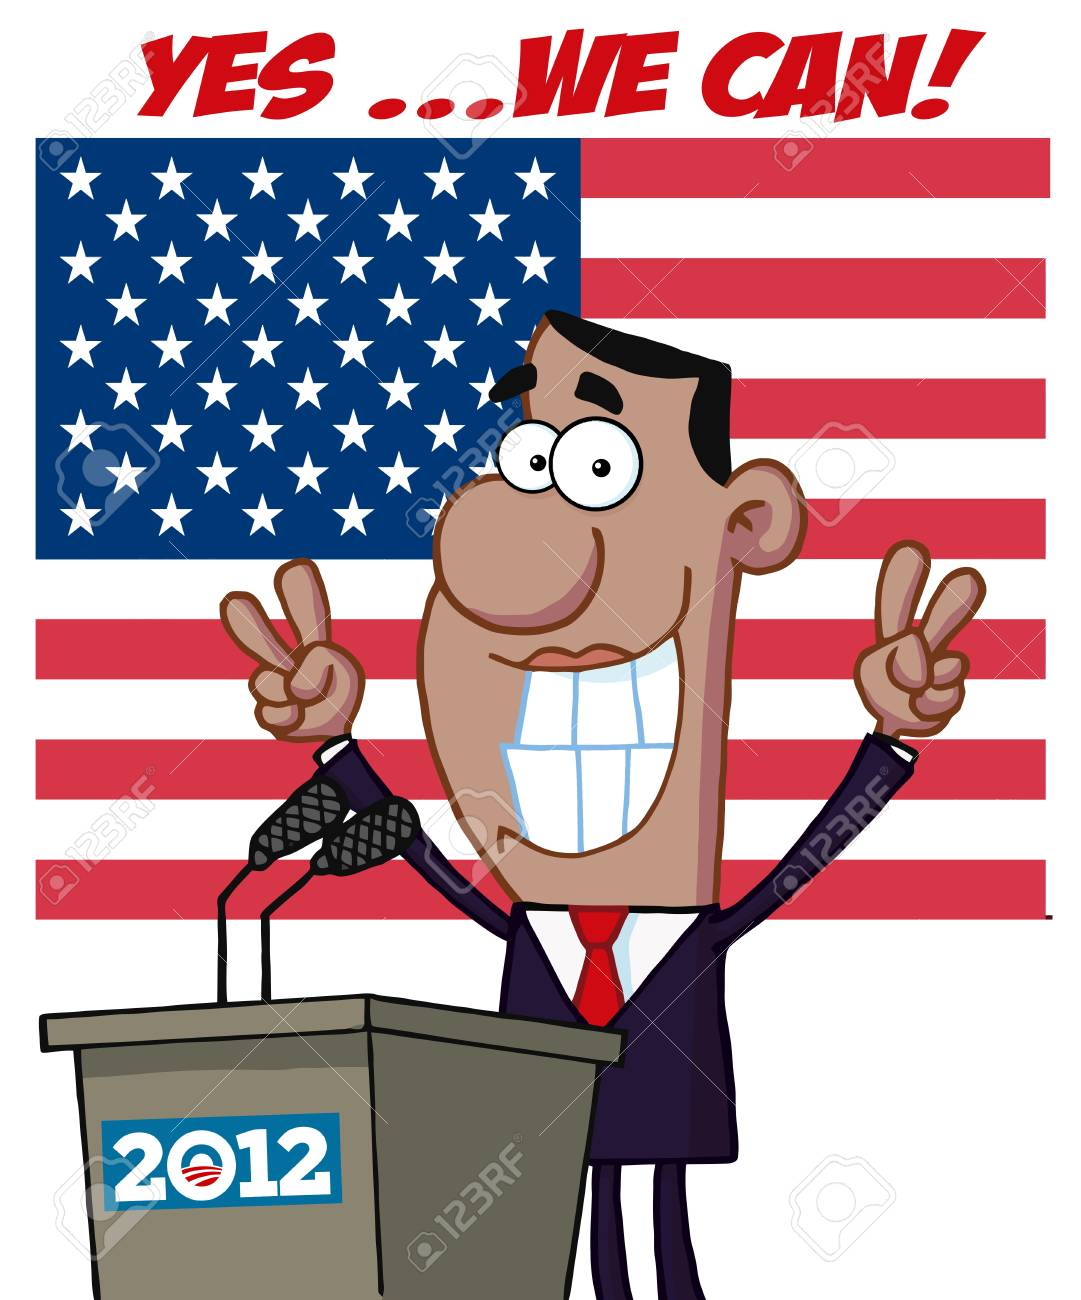 Barack Obama Flashes Victory Signs From Podium 2012 And Text Stock Vector - 12775342